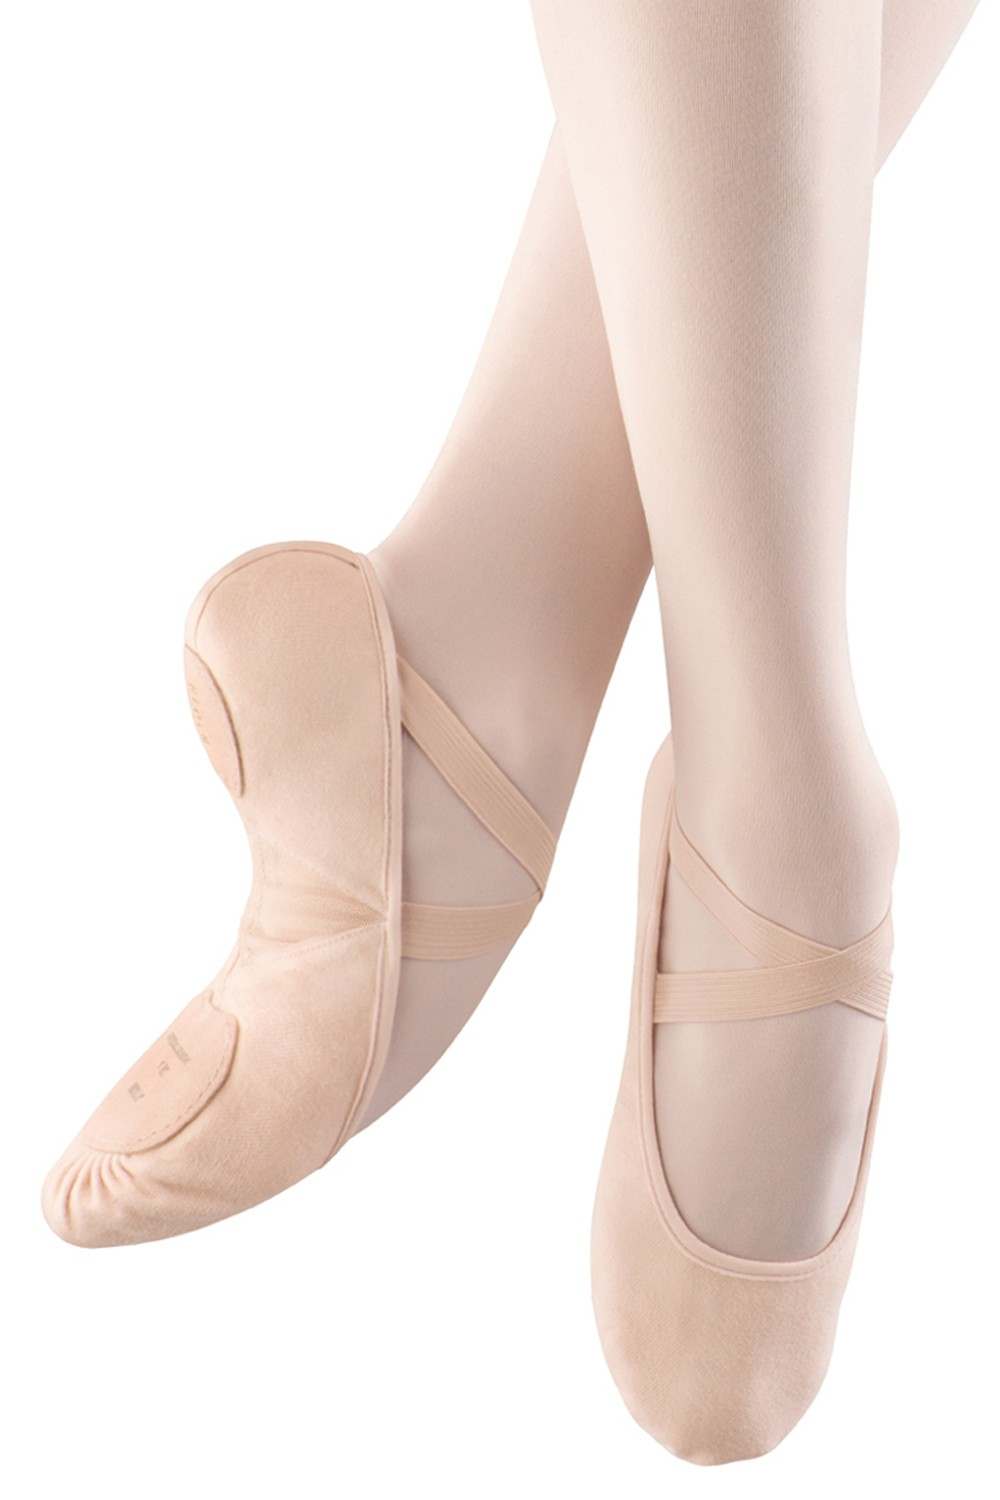 Pro Arch Canvas Ballet Shoes Women's Ballet Shoes